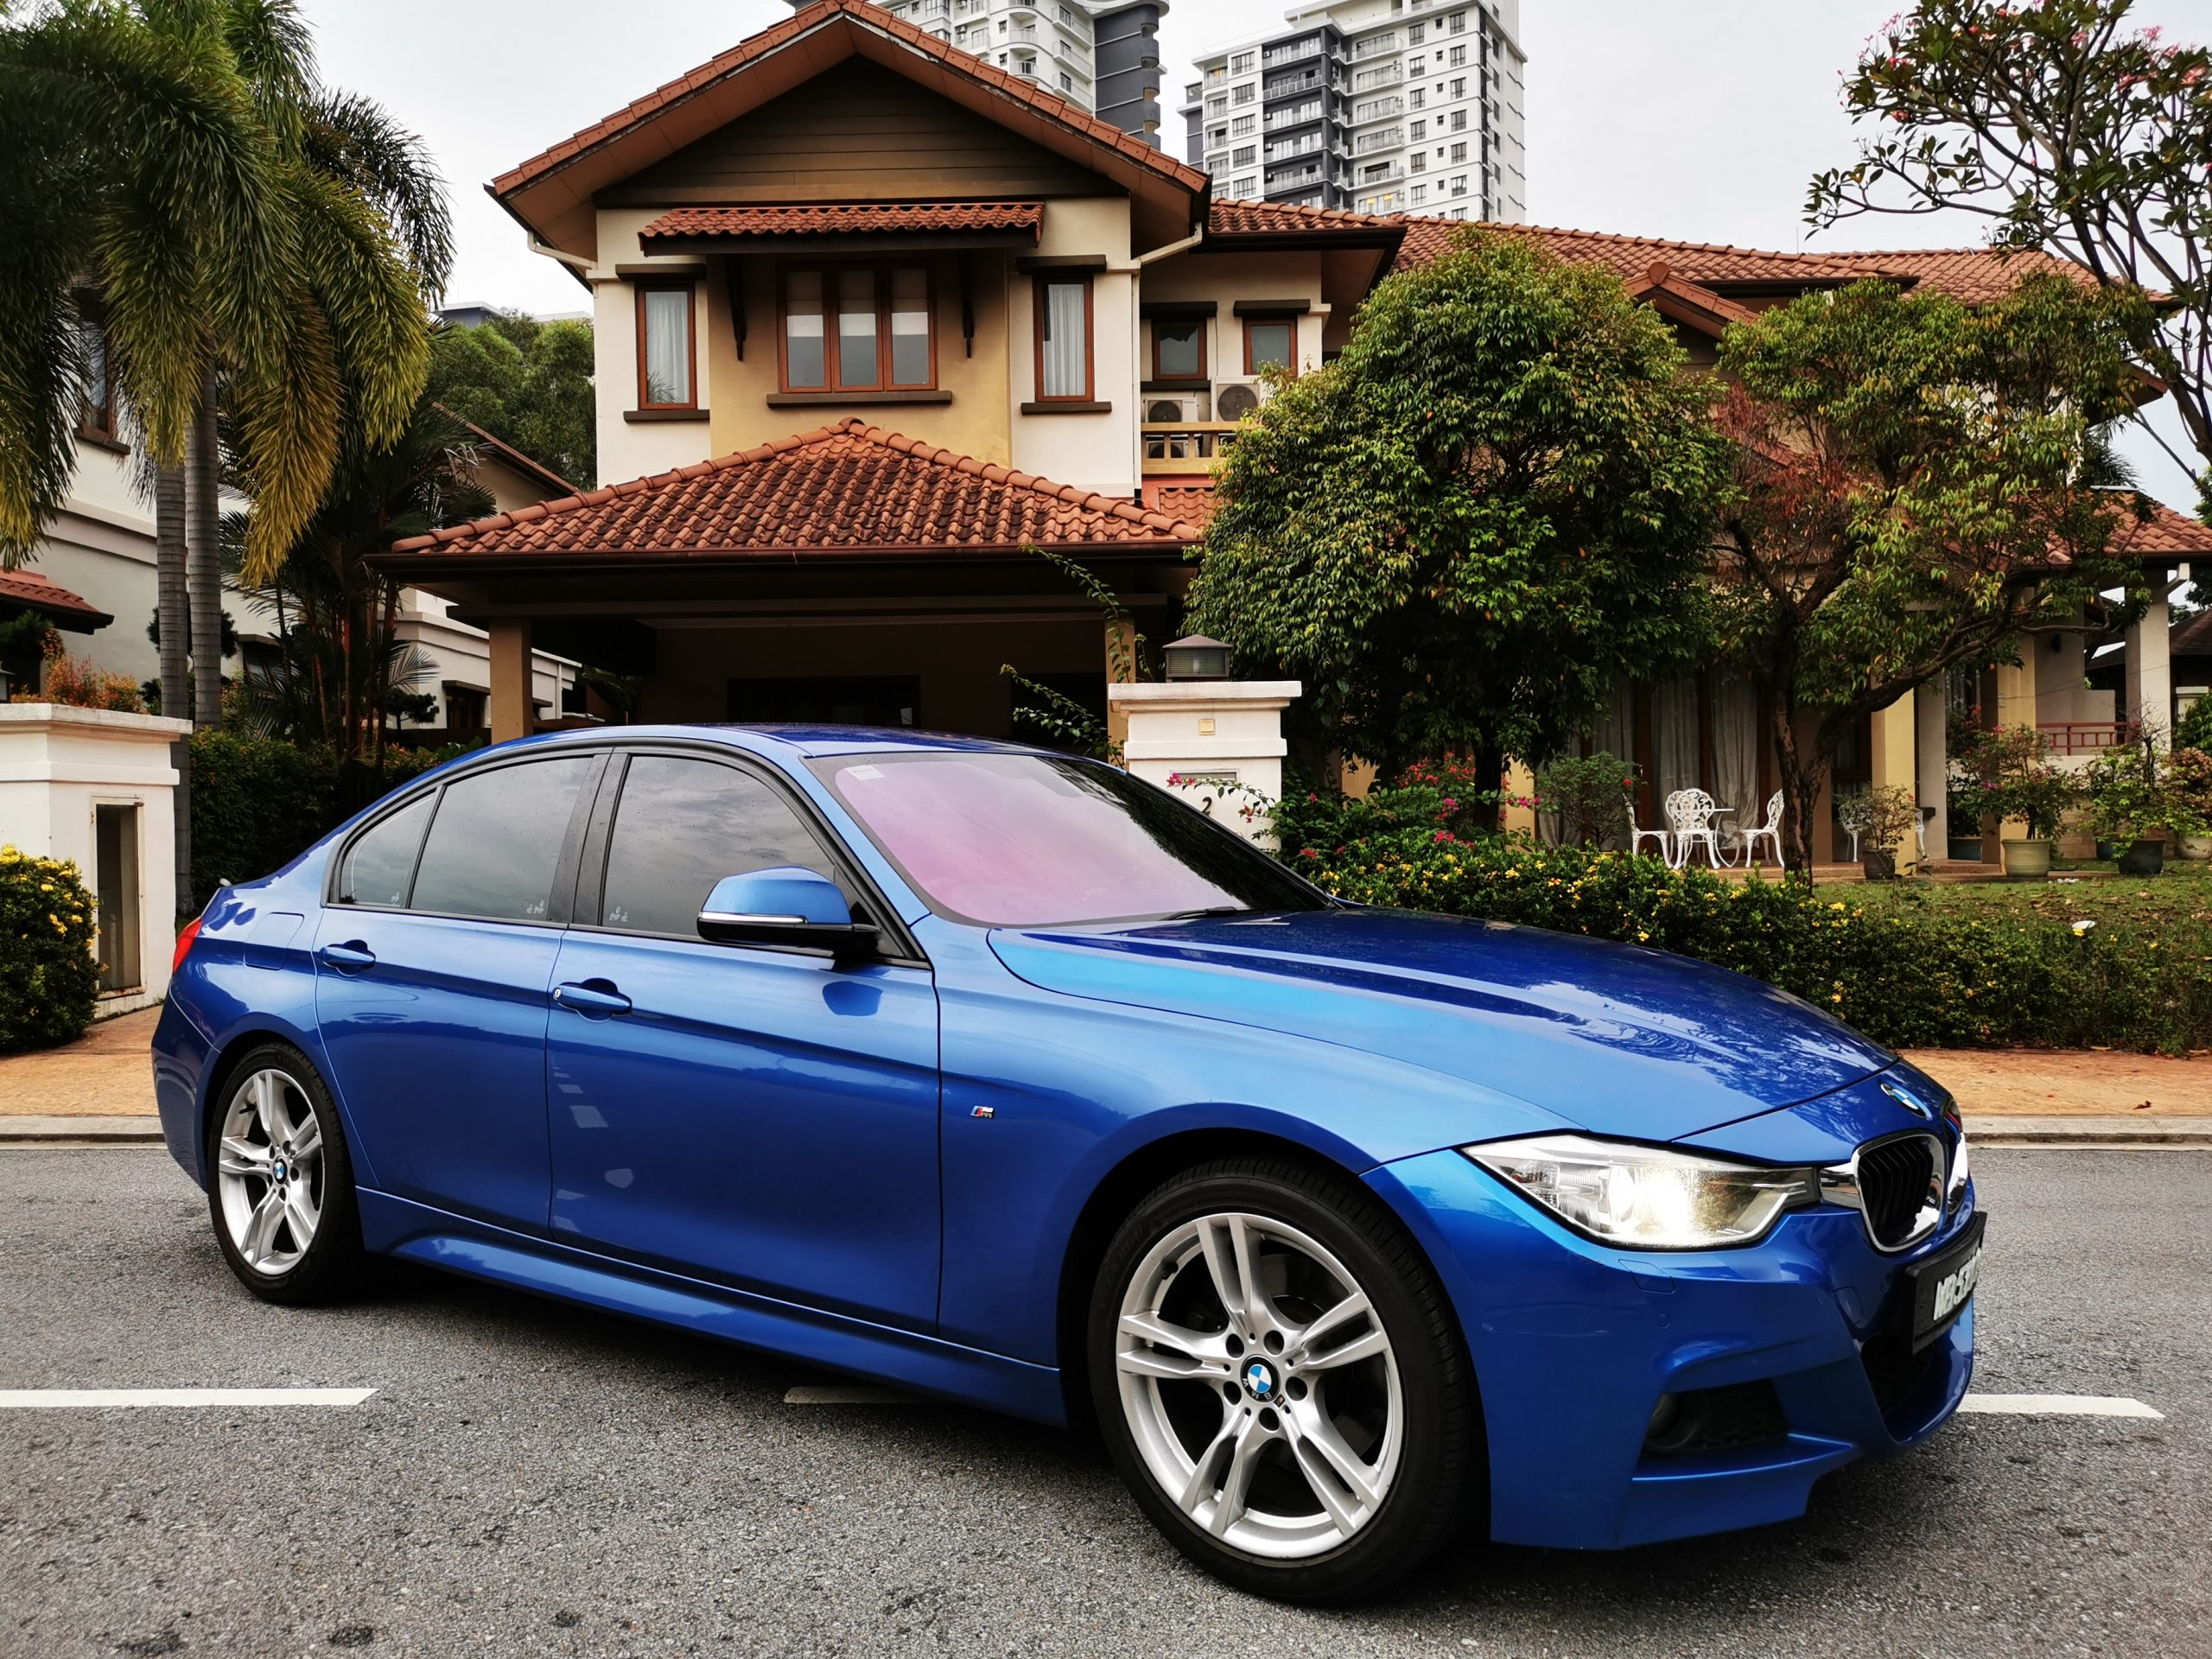 BMW M Sport in front of house